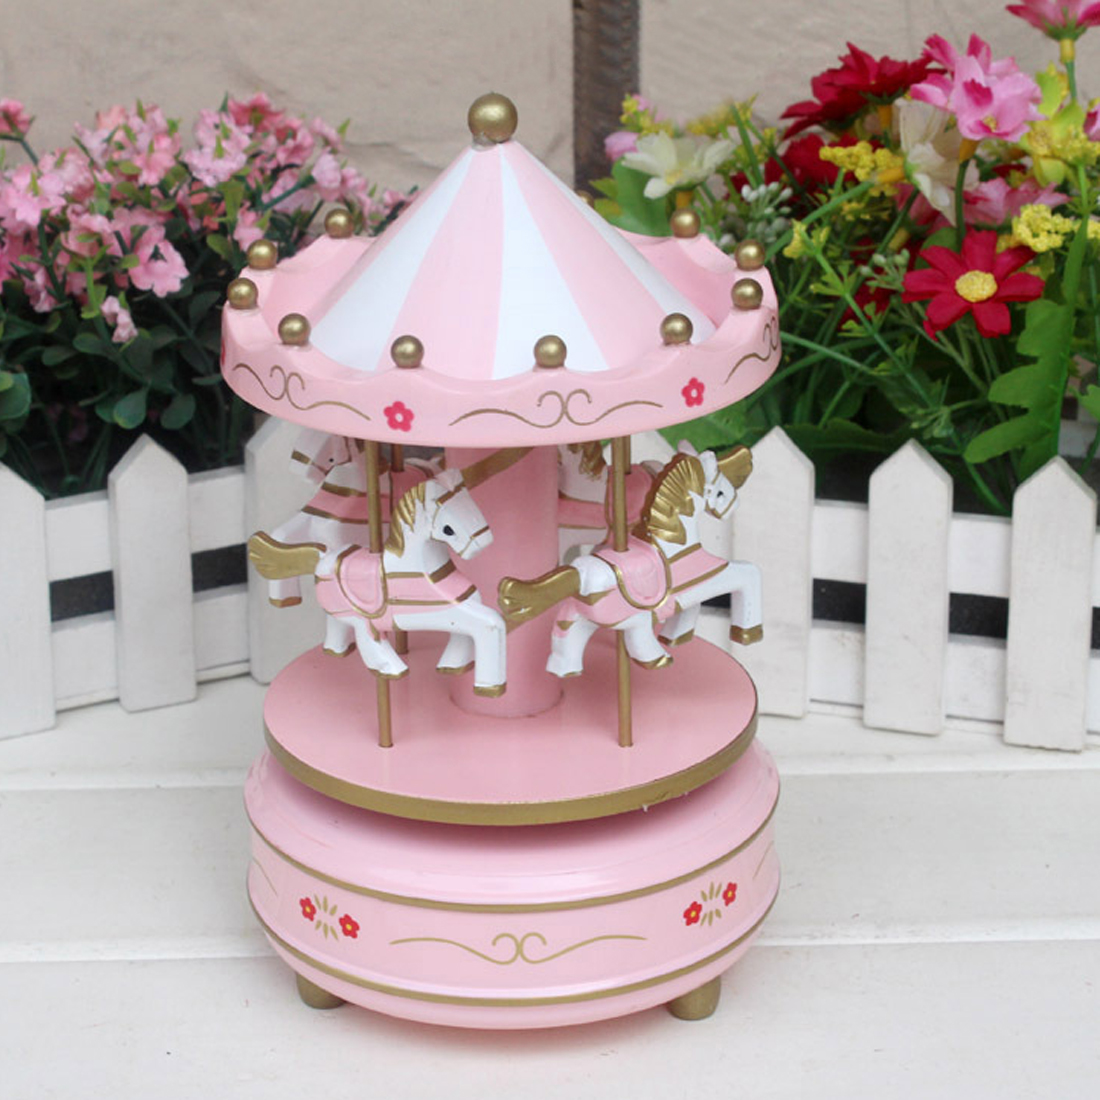 Merry Go Round Musical carousel horse wooden carousel music box toy child game Home Decor Christmas Wedding Birthday Gift